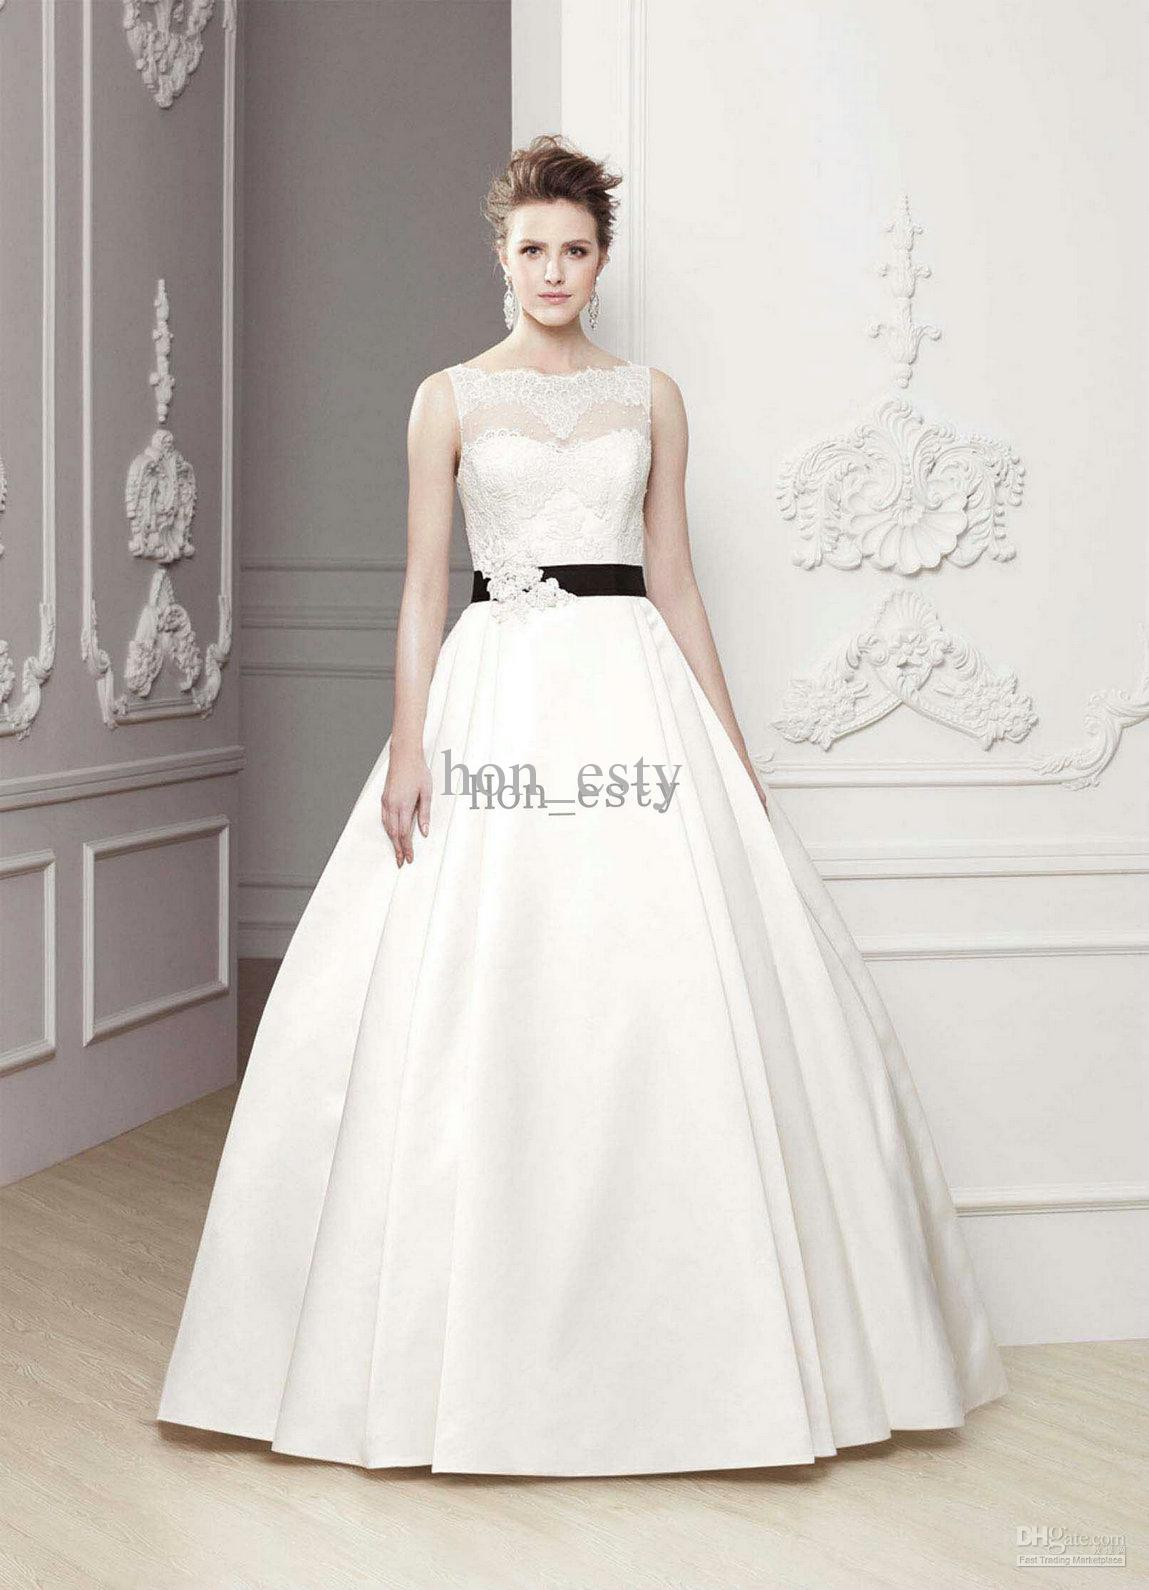 Lovely wedding dresses satin bateau neck lace beaded appliques see larger image ombrellifo Image collections